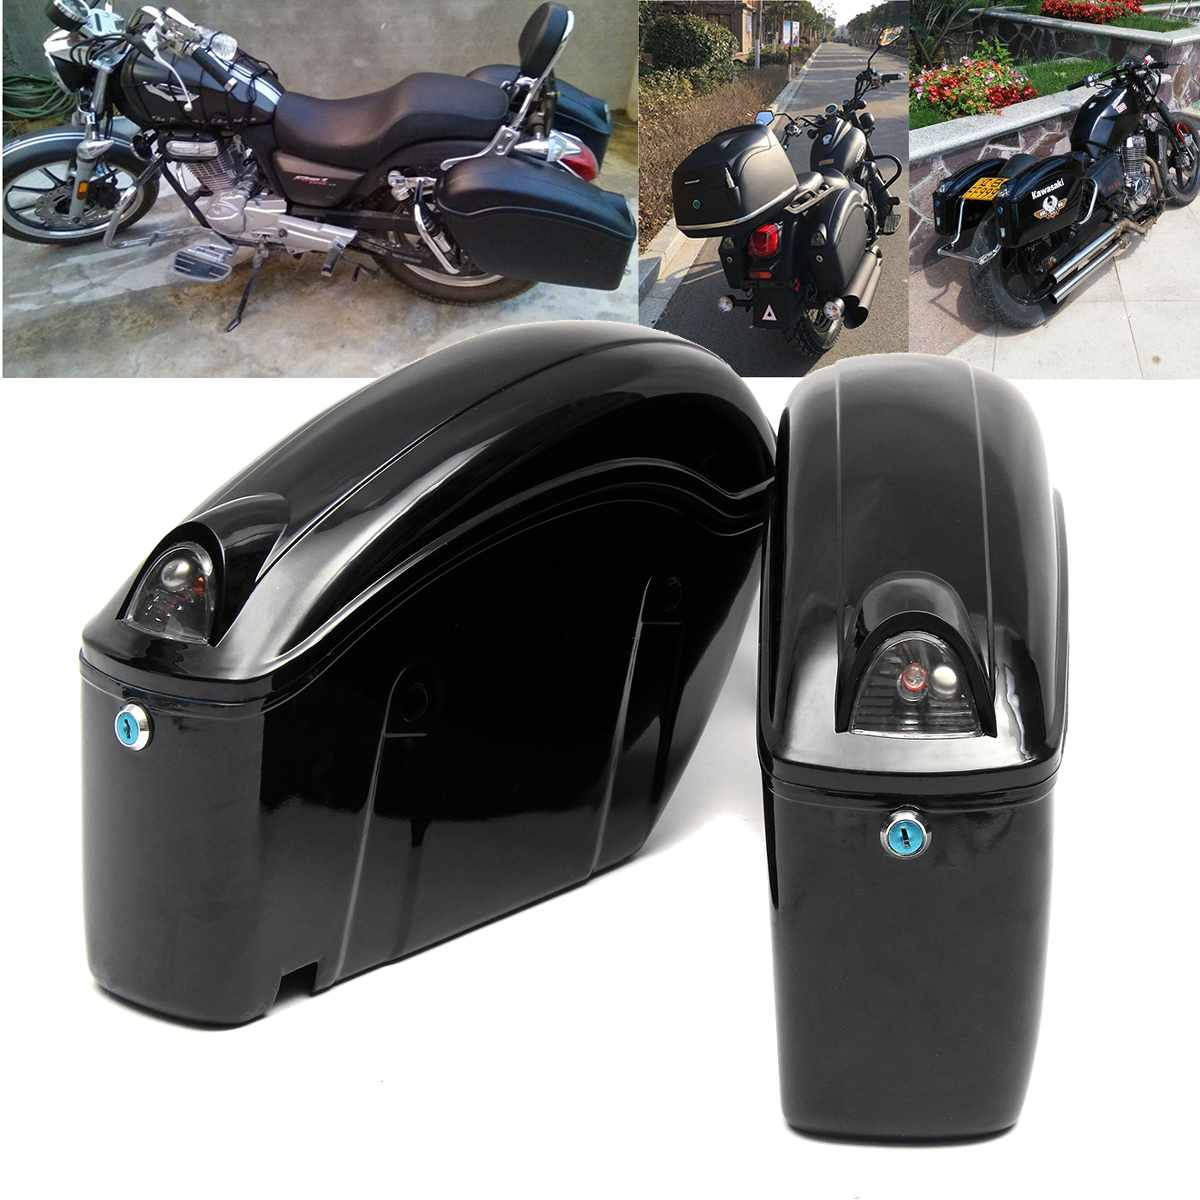 2pcs Cruiser Motorcycle Trunk Hard Bagaglio W/Lights Keys Saddlebags Luggages Waterproof image